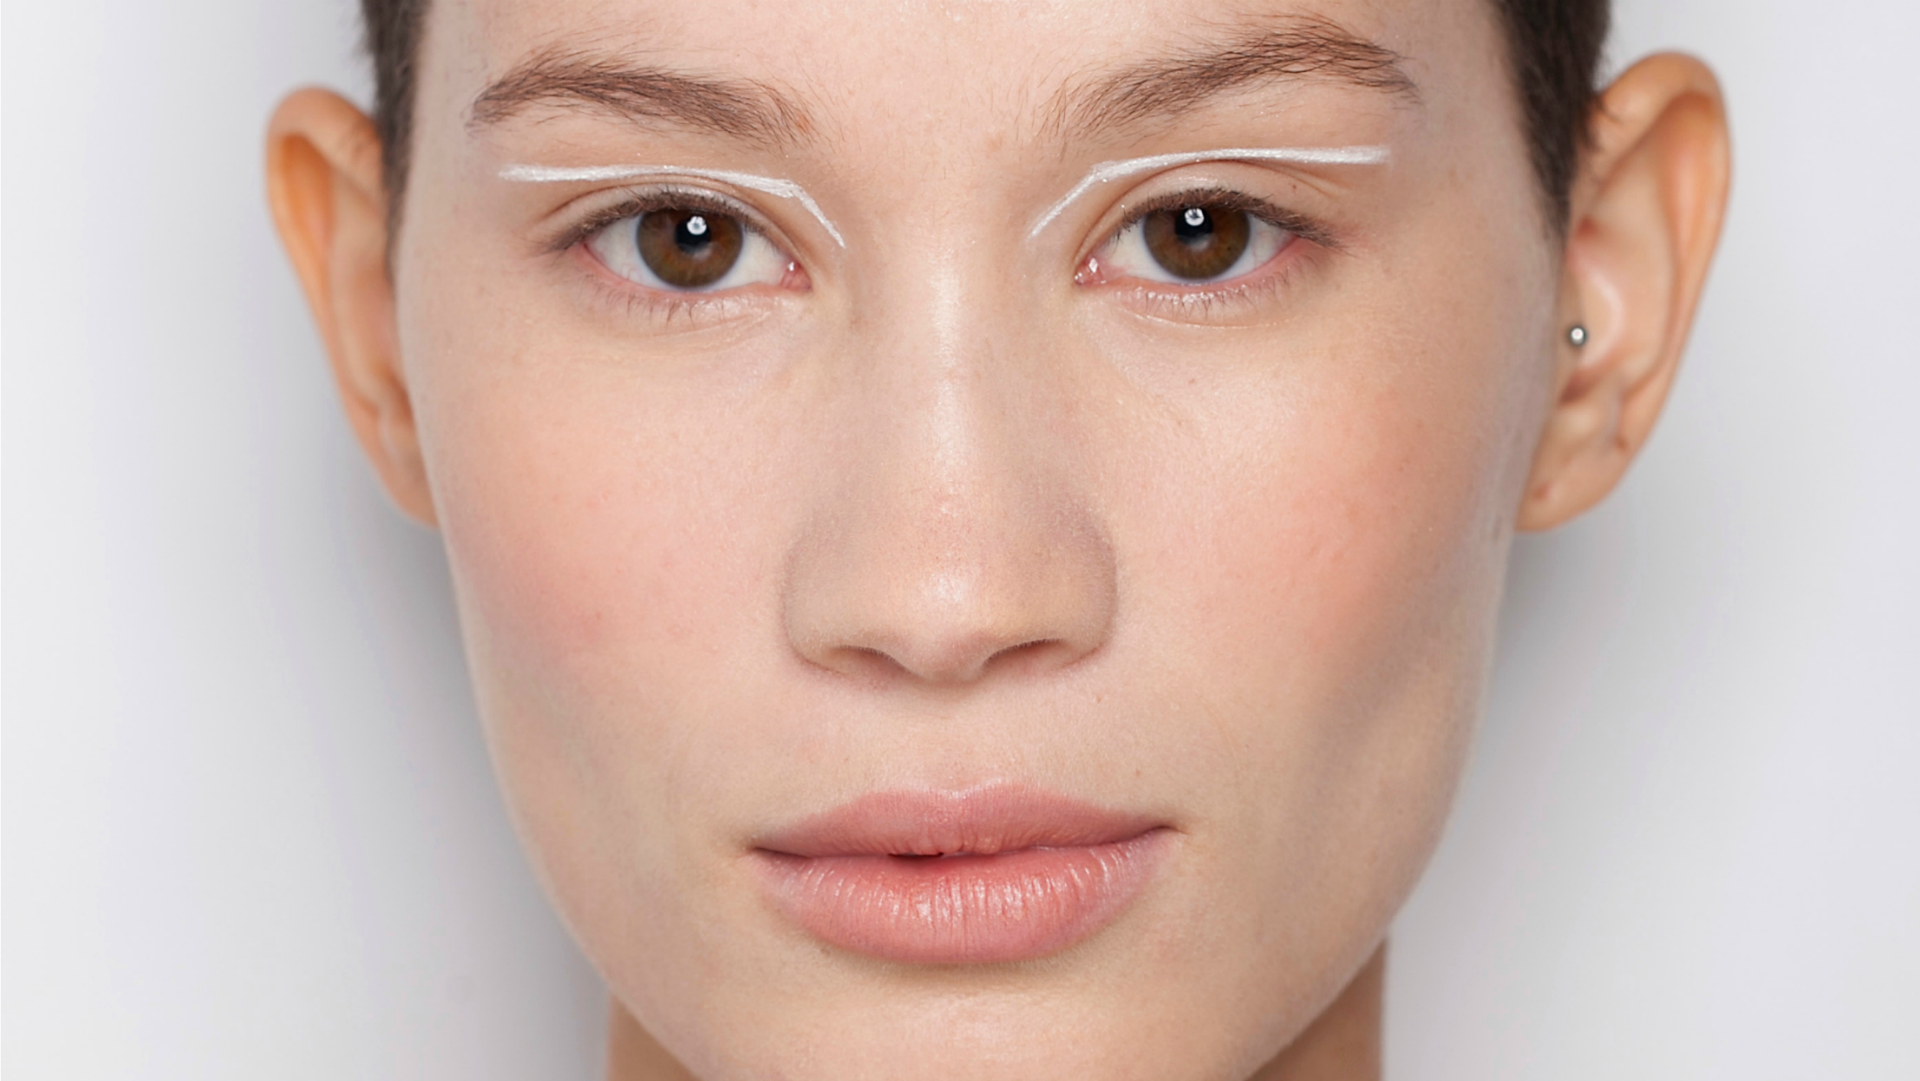 What's the Difference Between Whiteheads and Blackheads? We've Got Answers